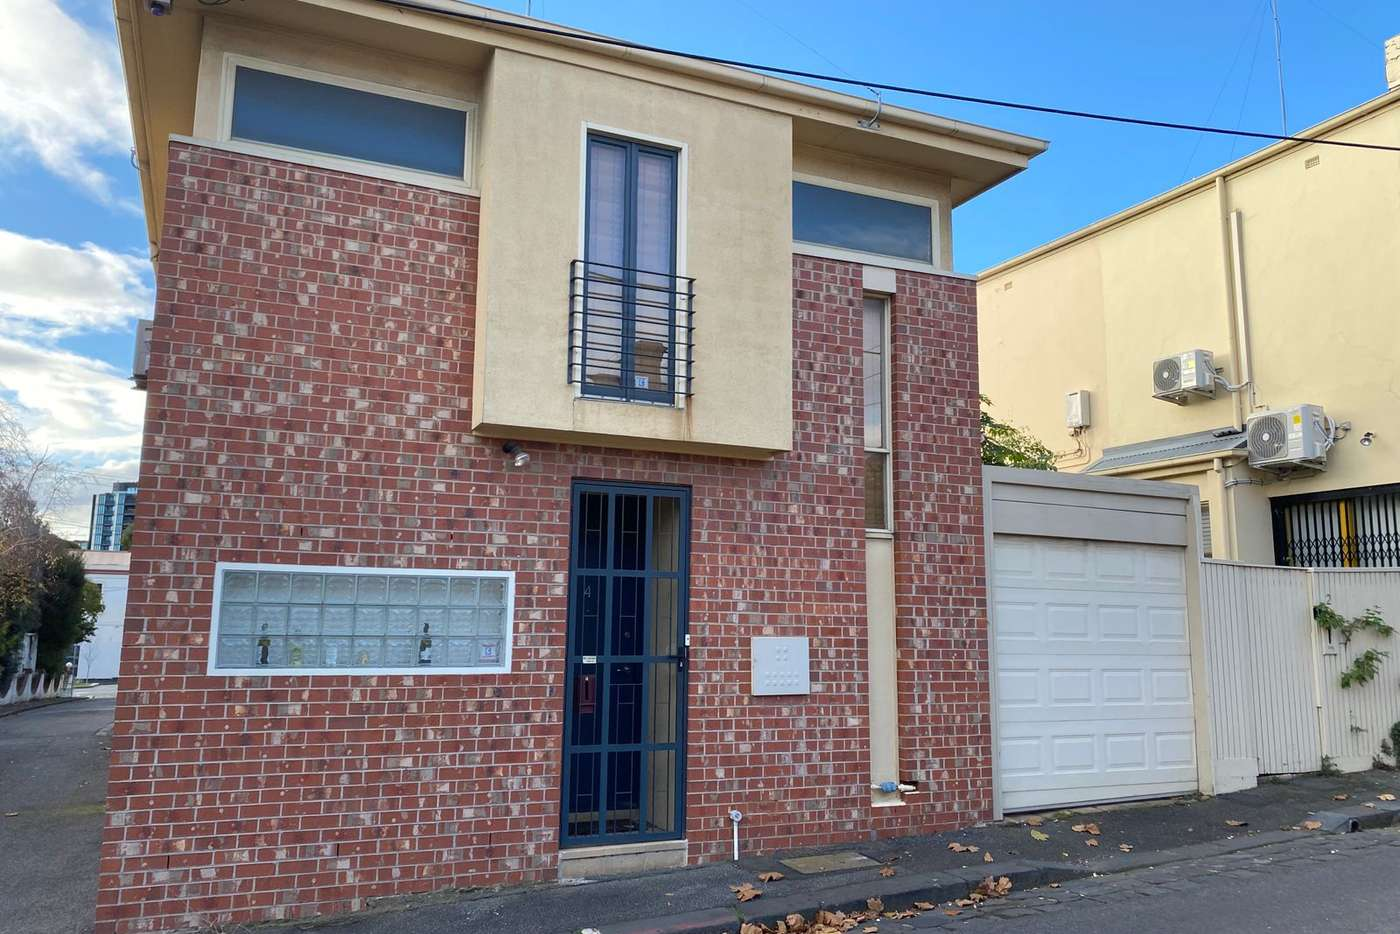 Main view of Homely house listing, 4 Byron Street, North Melbourne VIC 3051